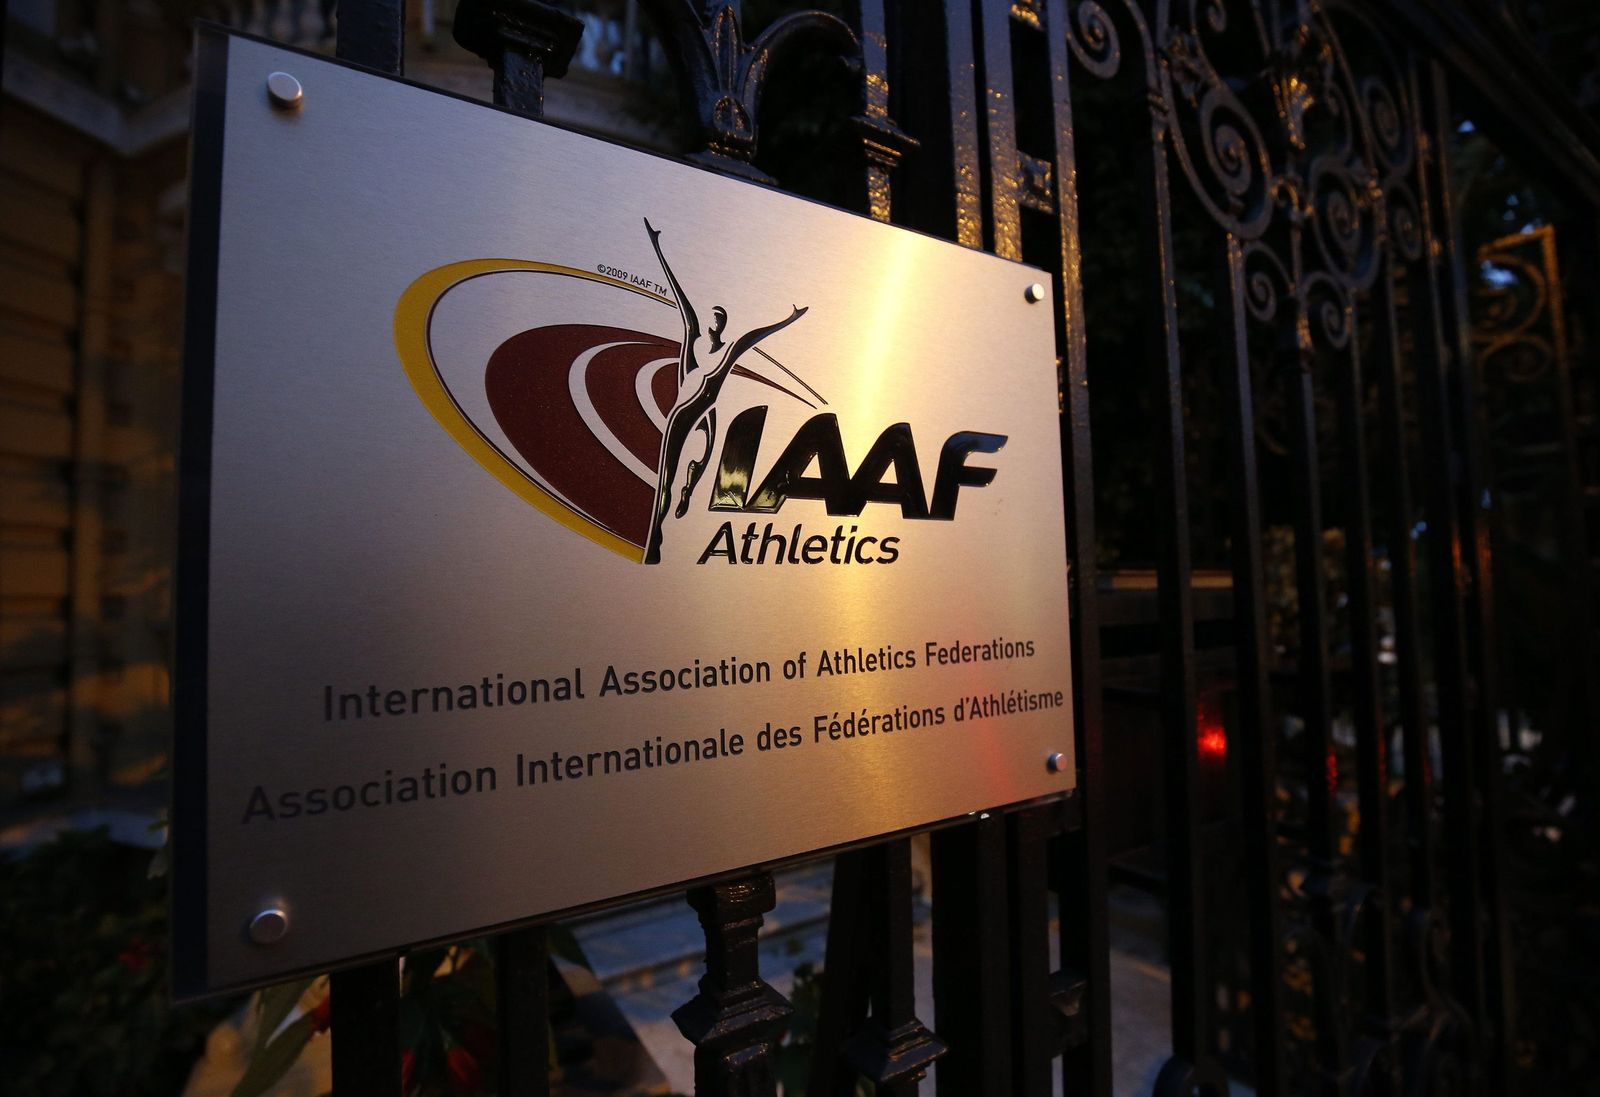 IAAF headquarters in Monaco